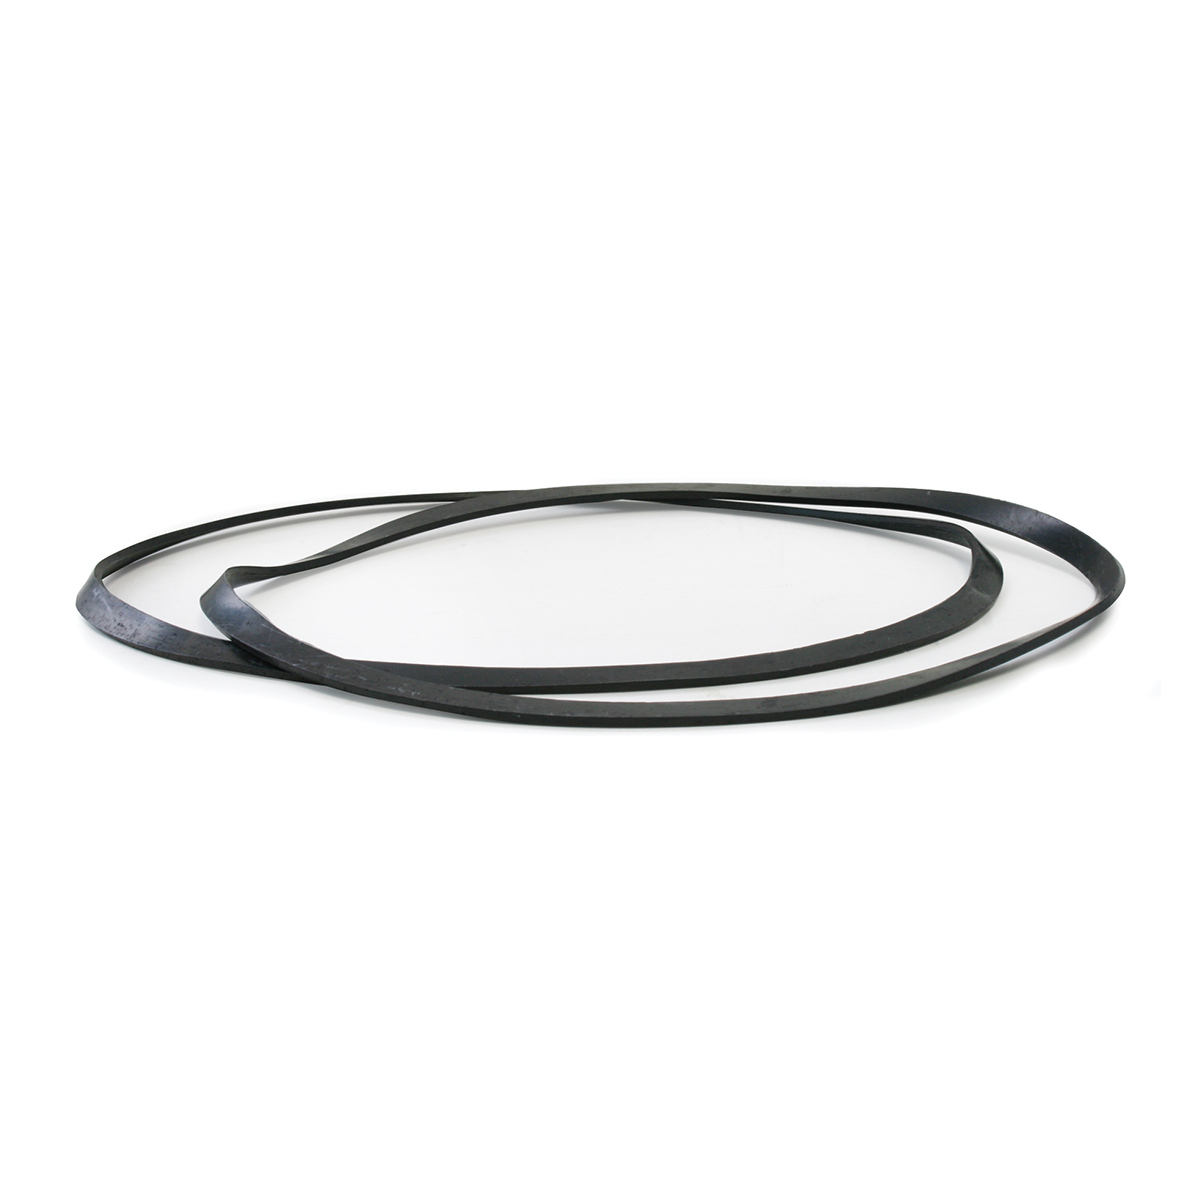 10585 Trailer Hub Cap Bracket - 2 Gasket View